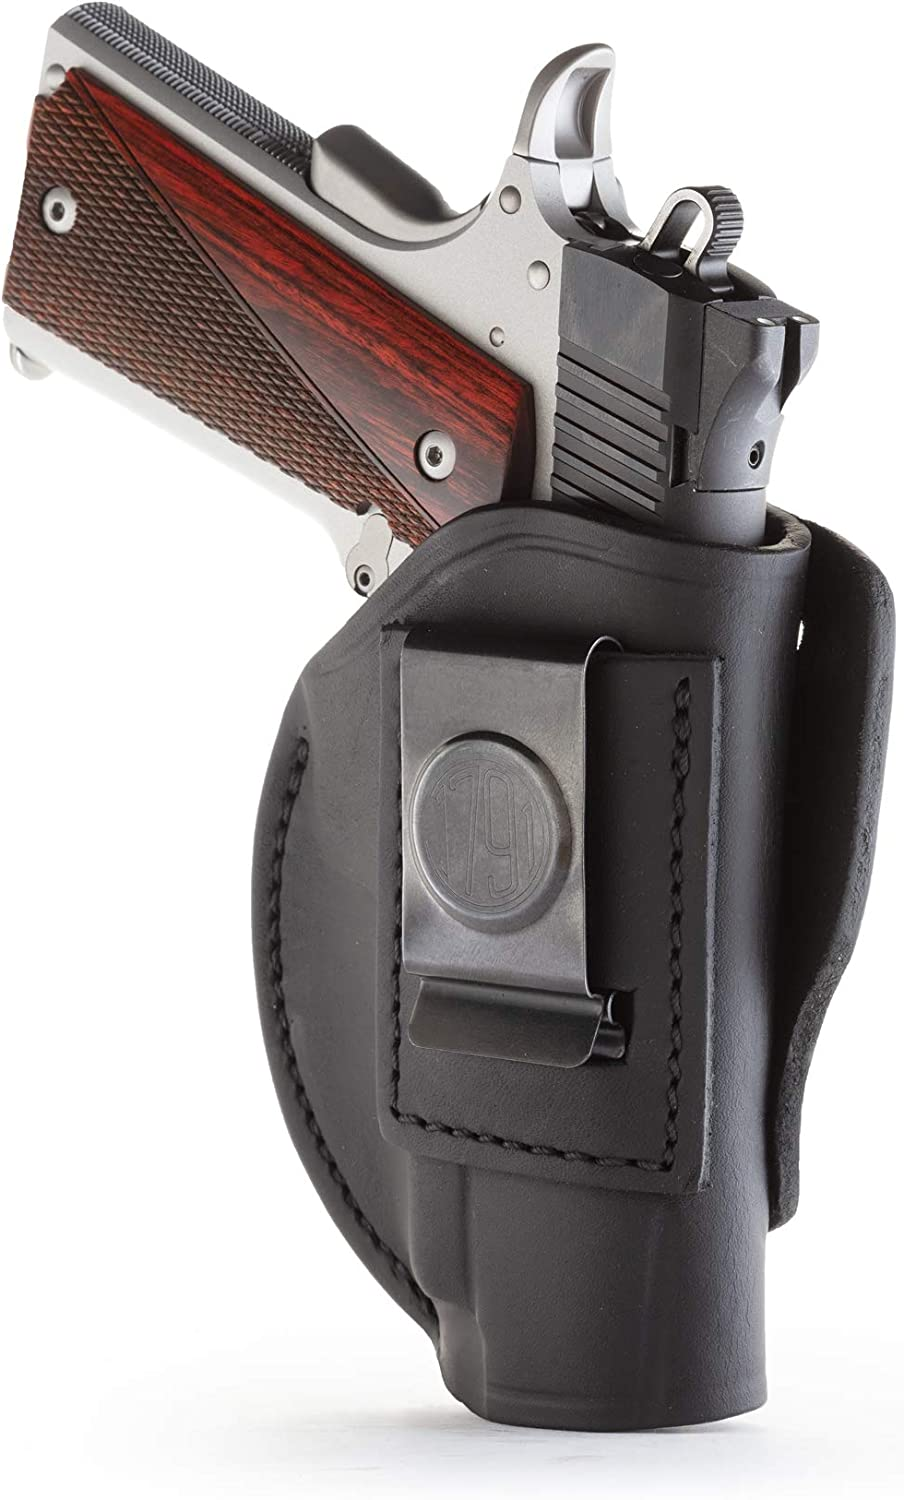 1791 GUNLEATHER 4-Way 1911 Holster - OWB and IWB CCW Holster - Right Handed Leather Gun Holster - Fits All 3 and 4 inch 1911 Models SIG, COLT, Kimber, Ruger, Browning, Taurus